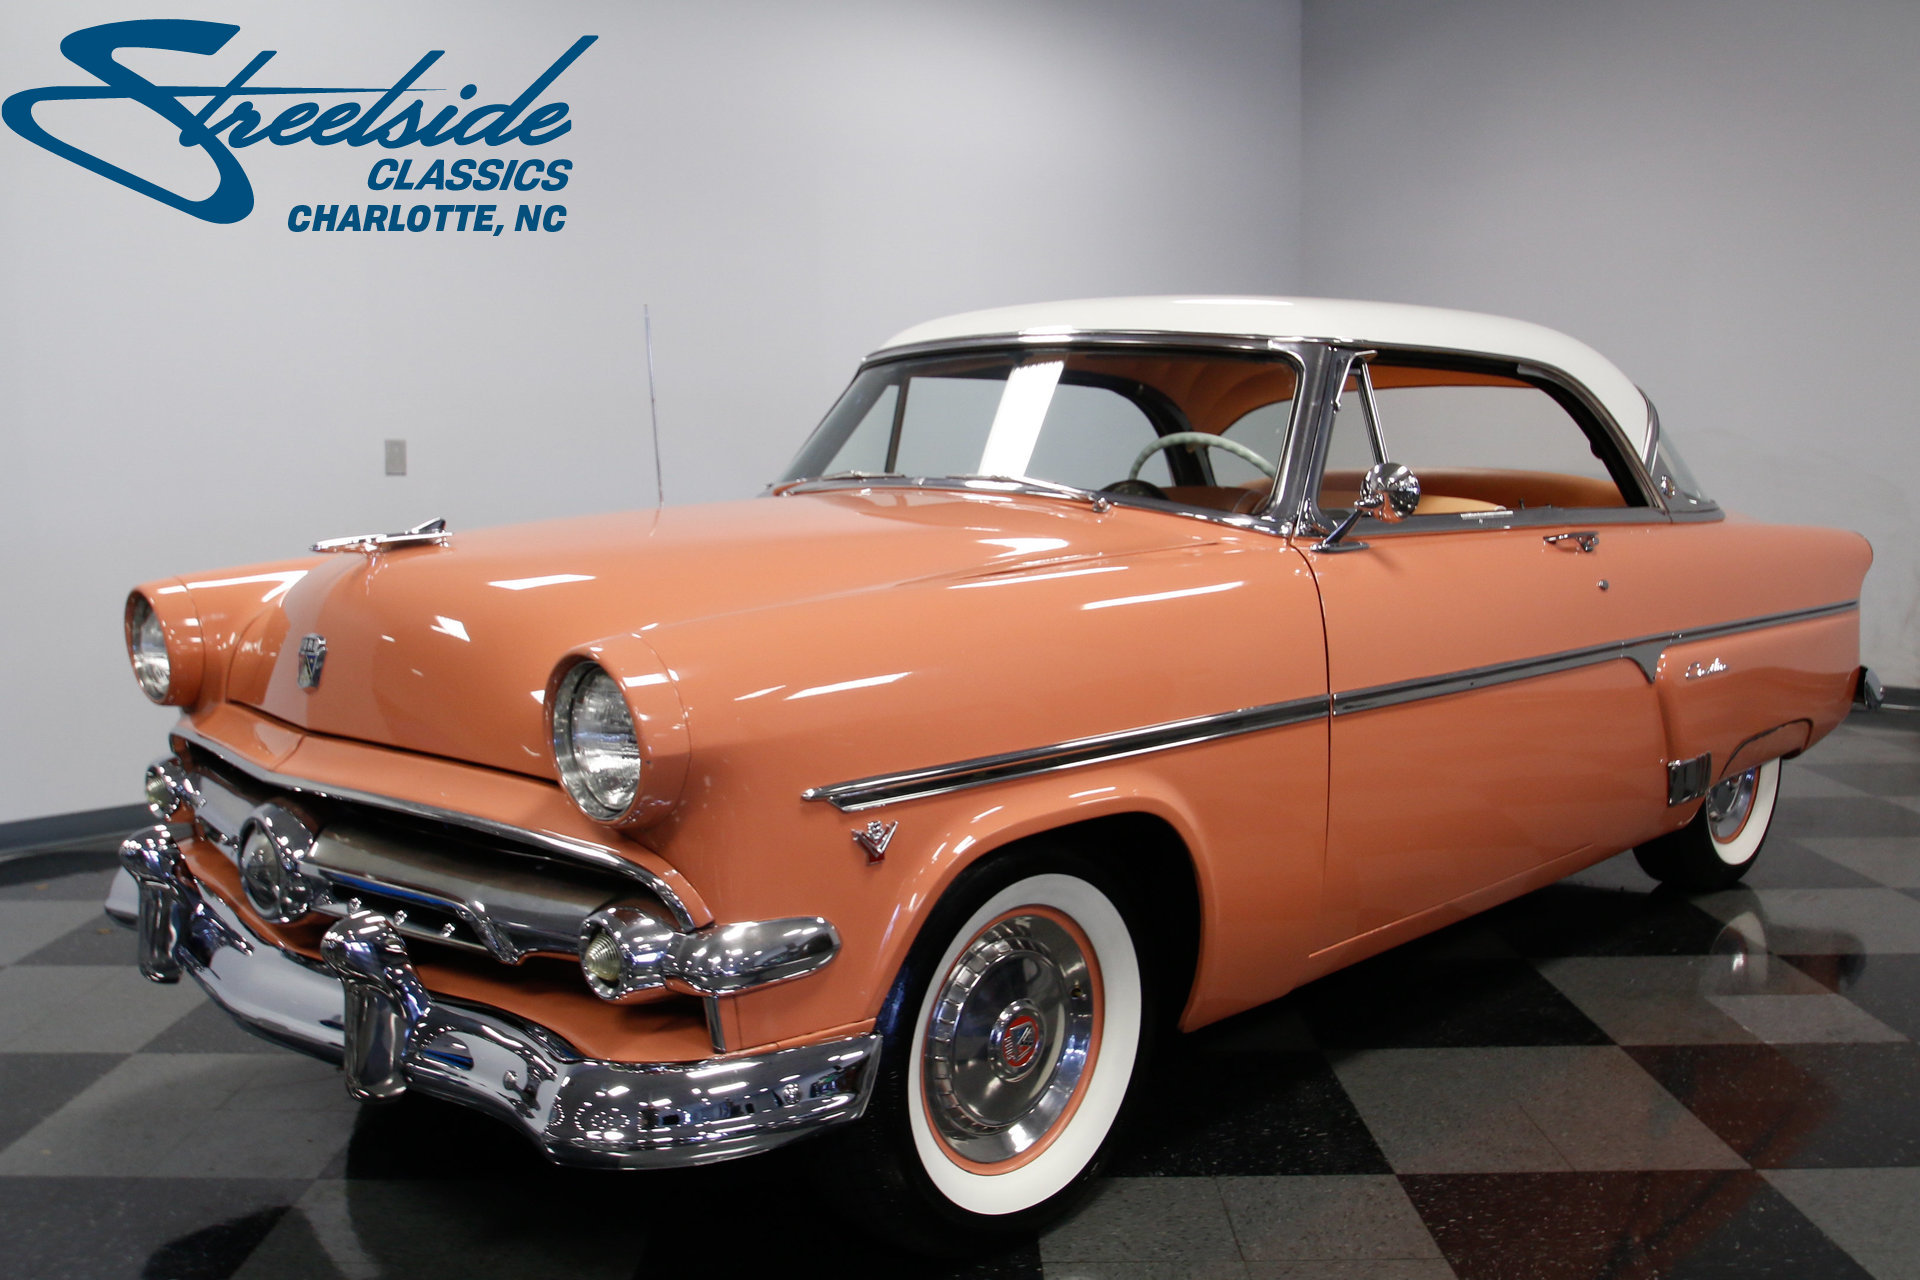 1954 Ford Crestline Victoria Streetside Classics The Nations Cars For Sale Show More Photos